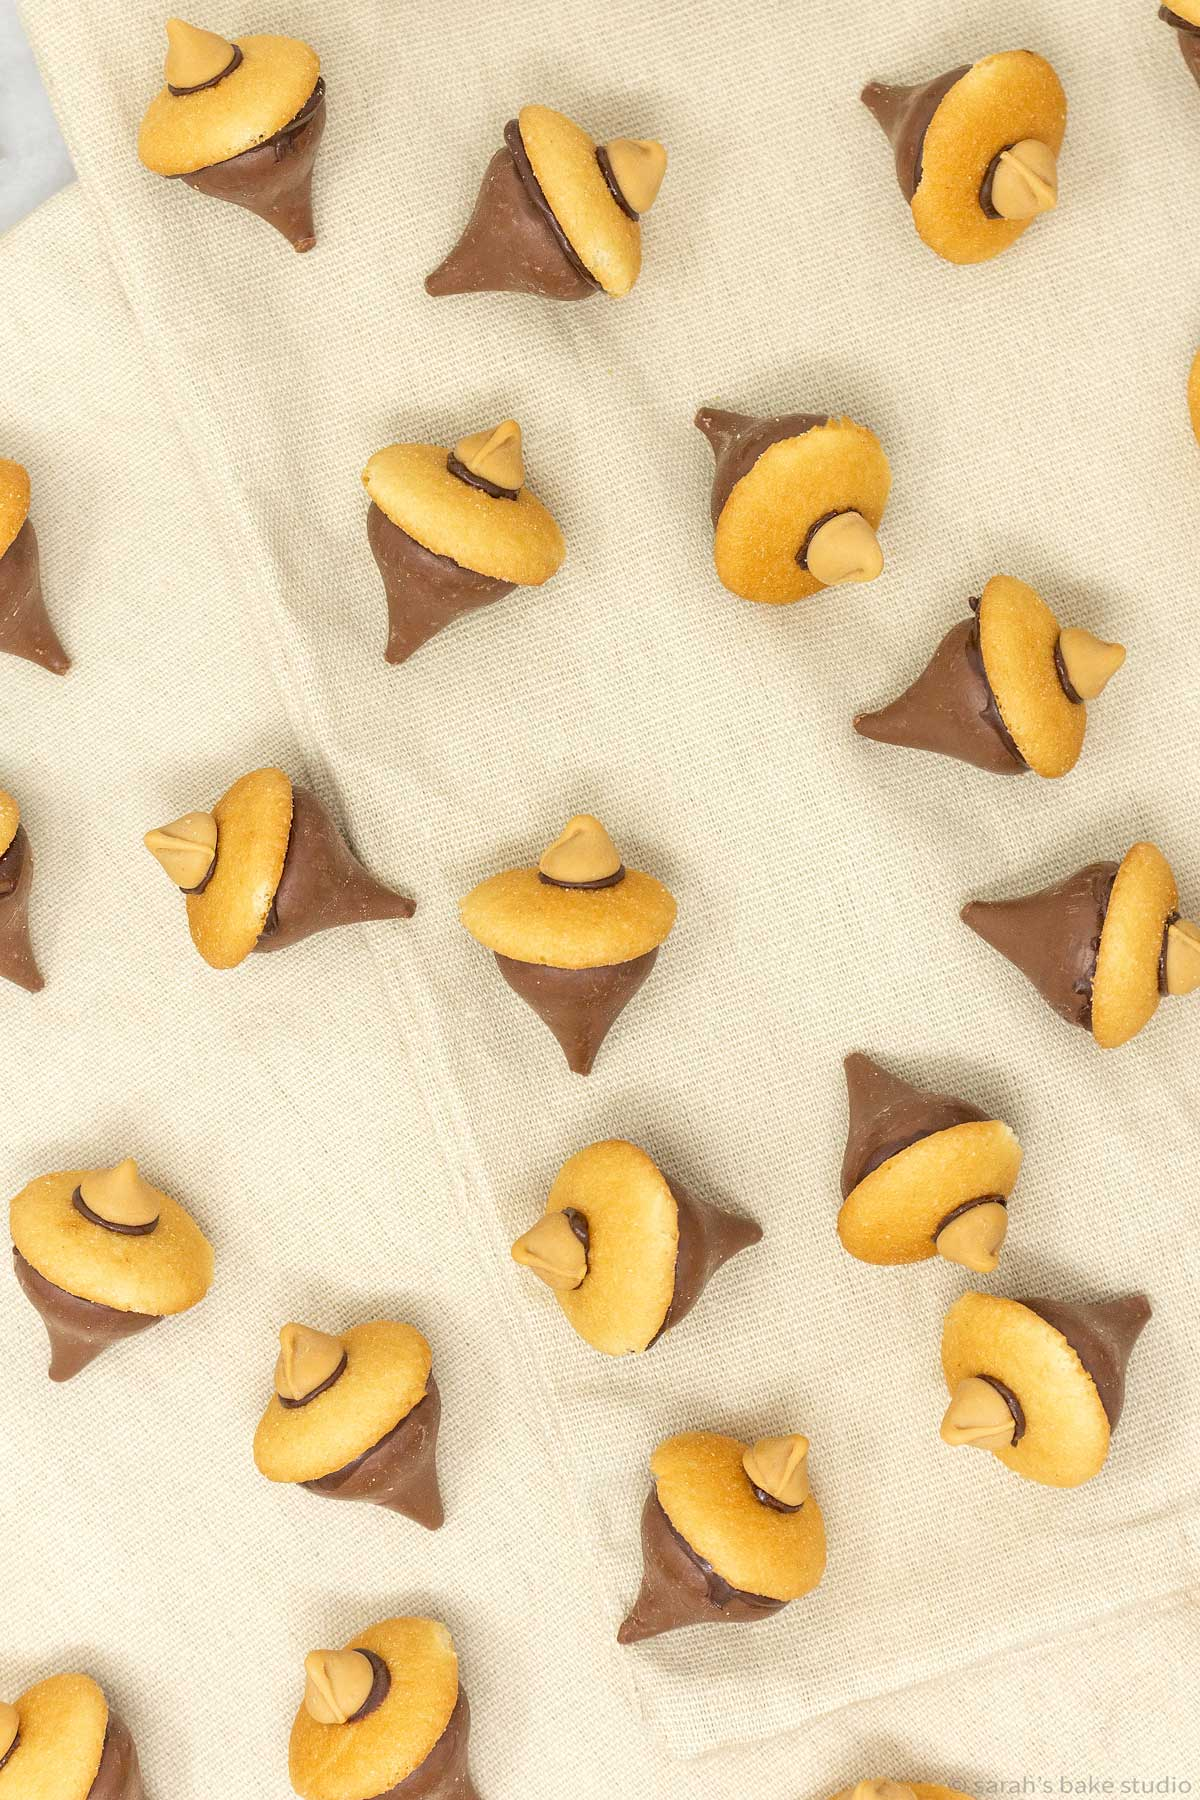 Chocolate Acorn Cookies - super easy and utterly adorable edible acorns made of chocolate, Hershey's Kisses, and mini vanilla wafer cookies; a perfect addition to your Thanksgiving desserts.